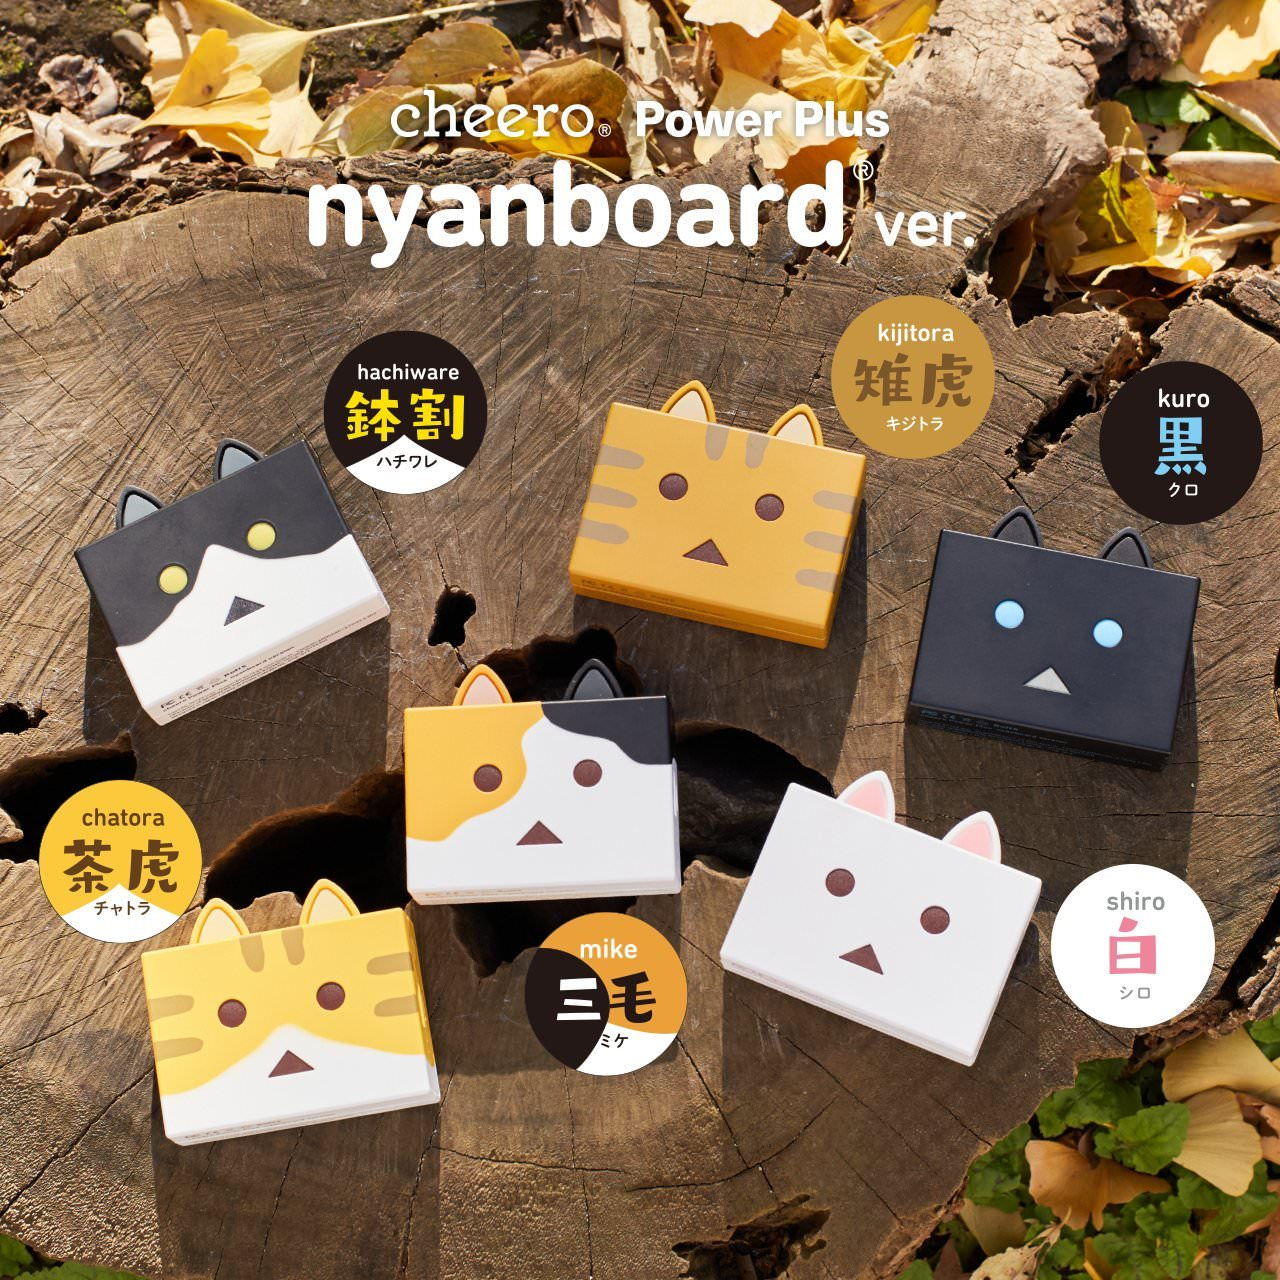 cheero-power-plus-nyanboard-ver_1